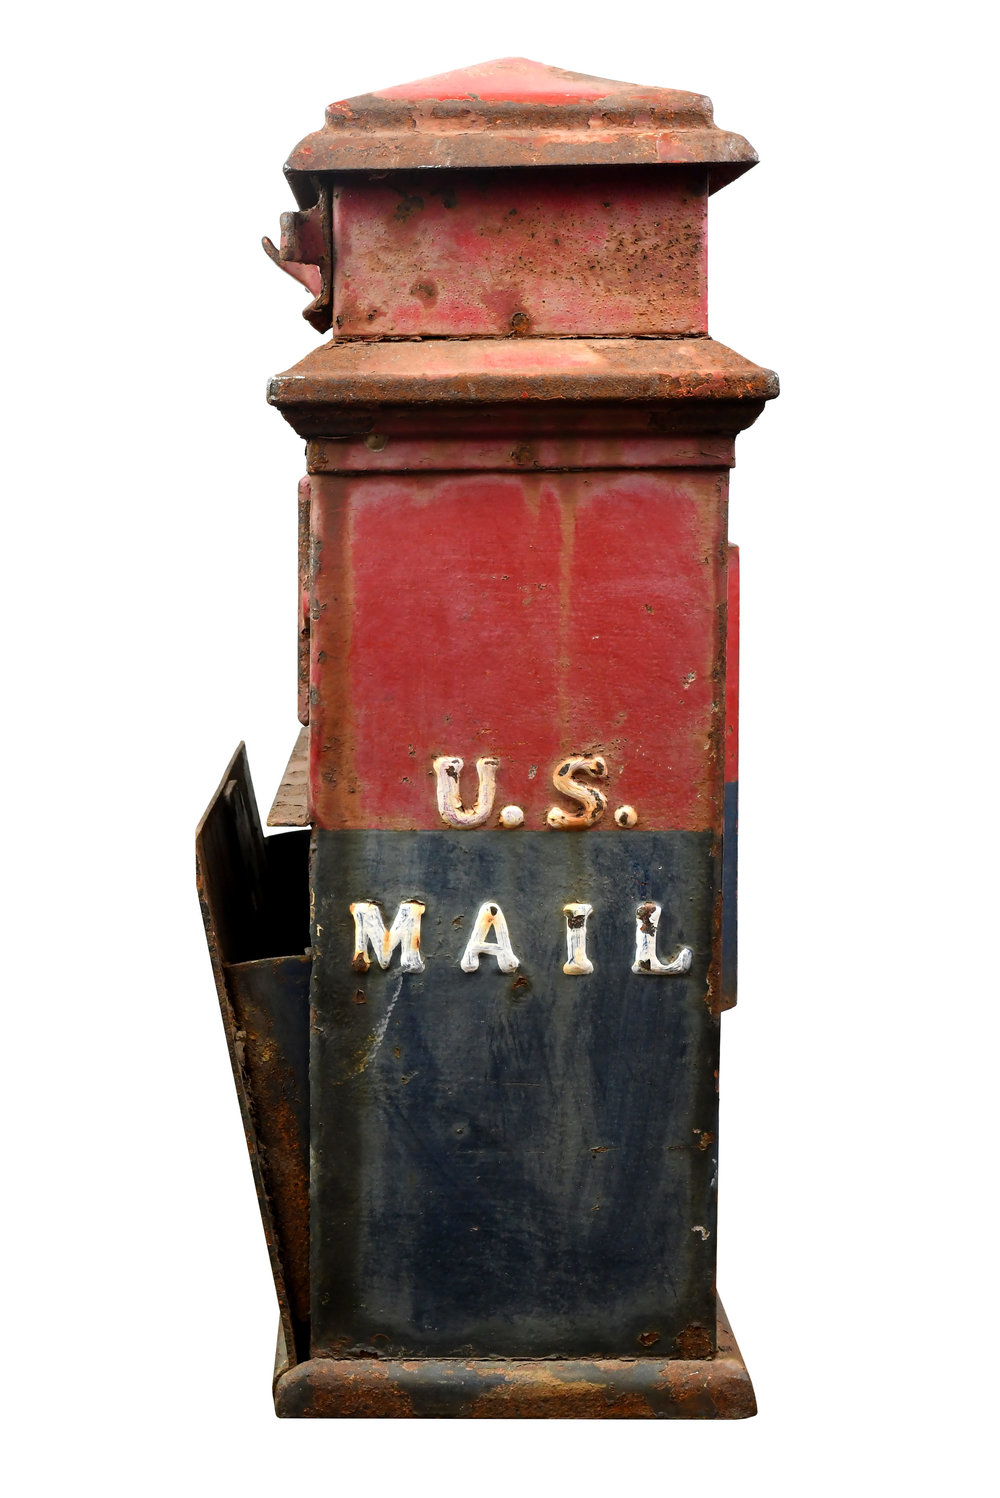 47478-iron-mailbox-side-full-view.jpg